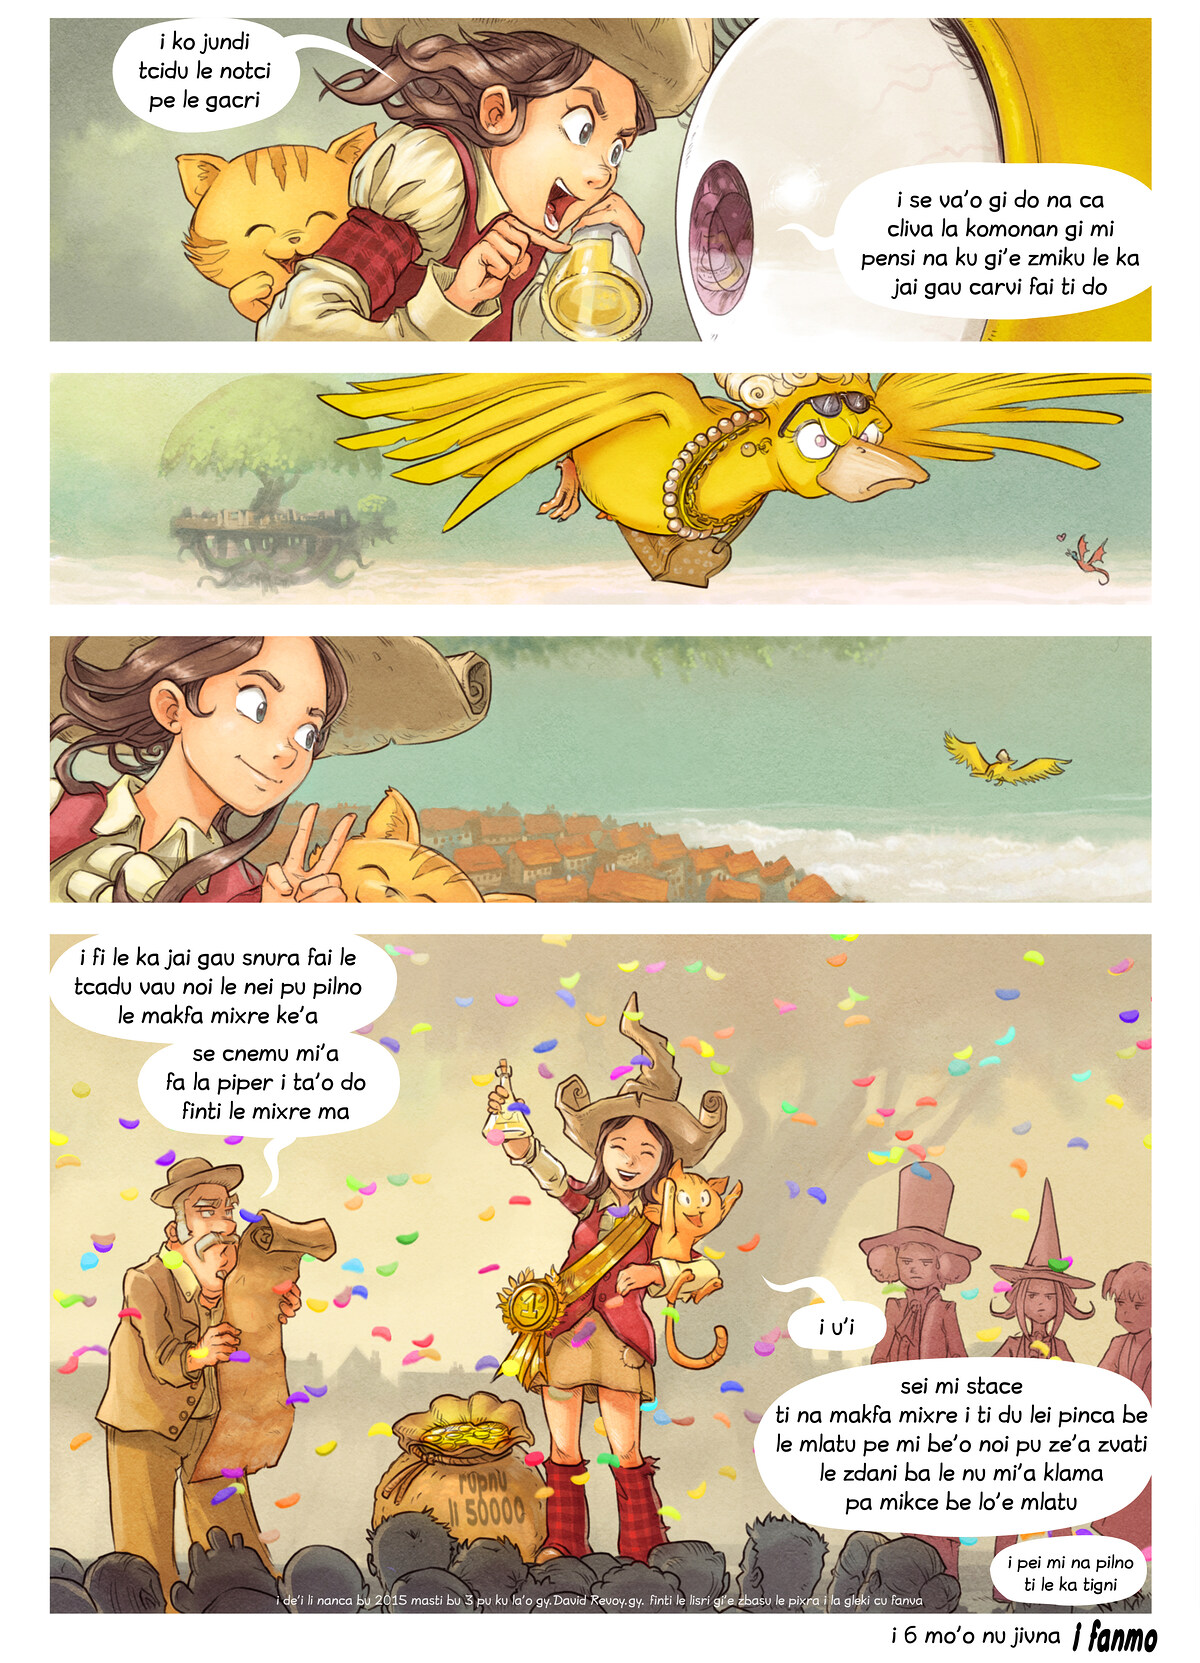 A webcomic page of Pepper&Carrot, pagbu 6 [jb], papri 9